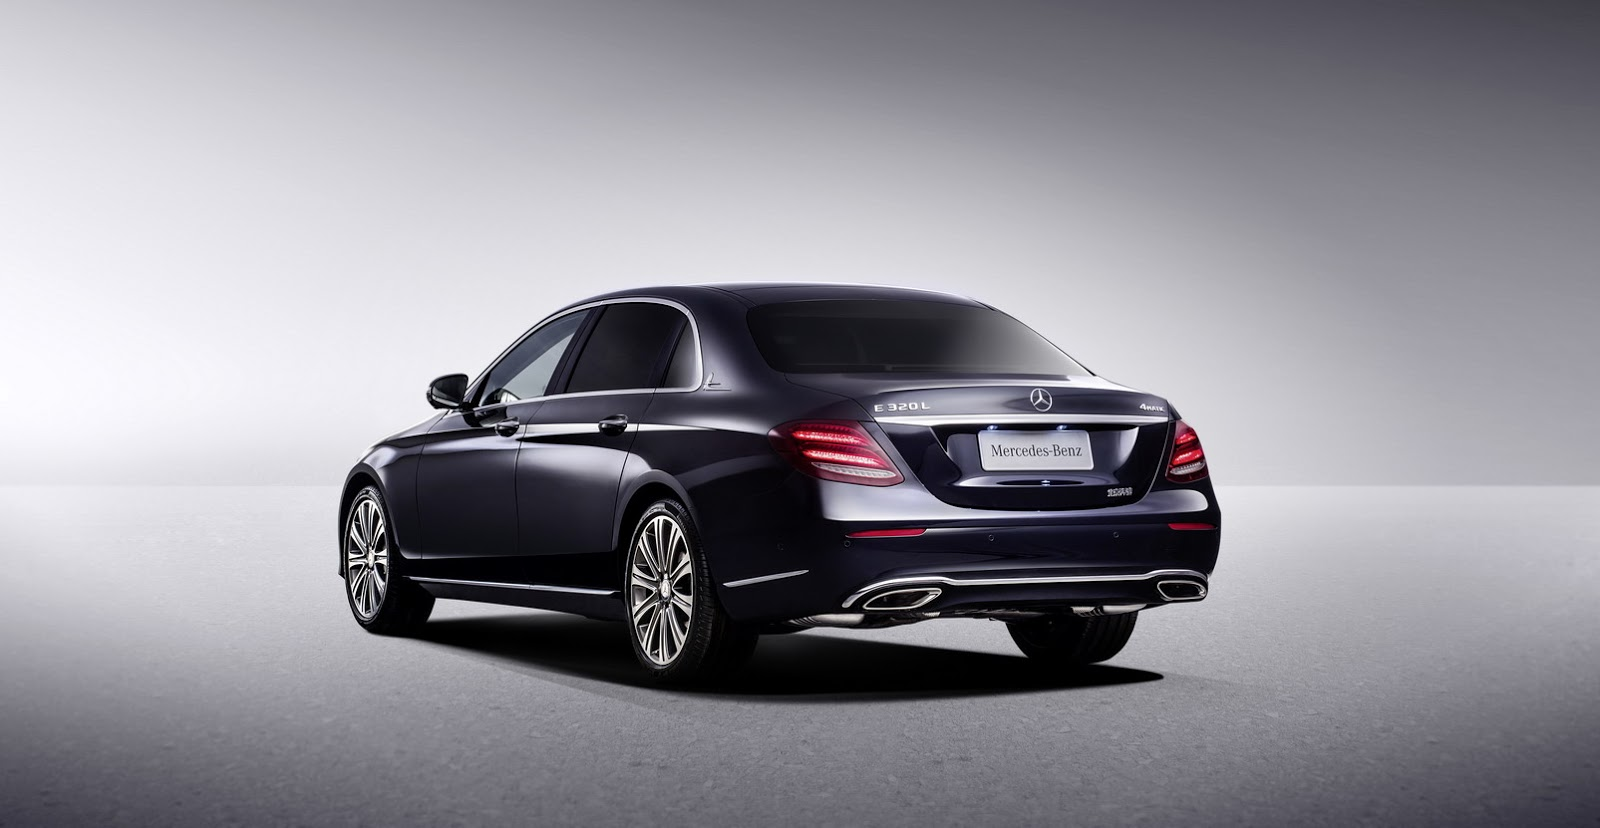 China 39 s new mercedes benz e class lwb looks like a mini for R h mercedes benz